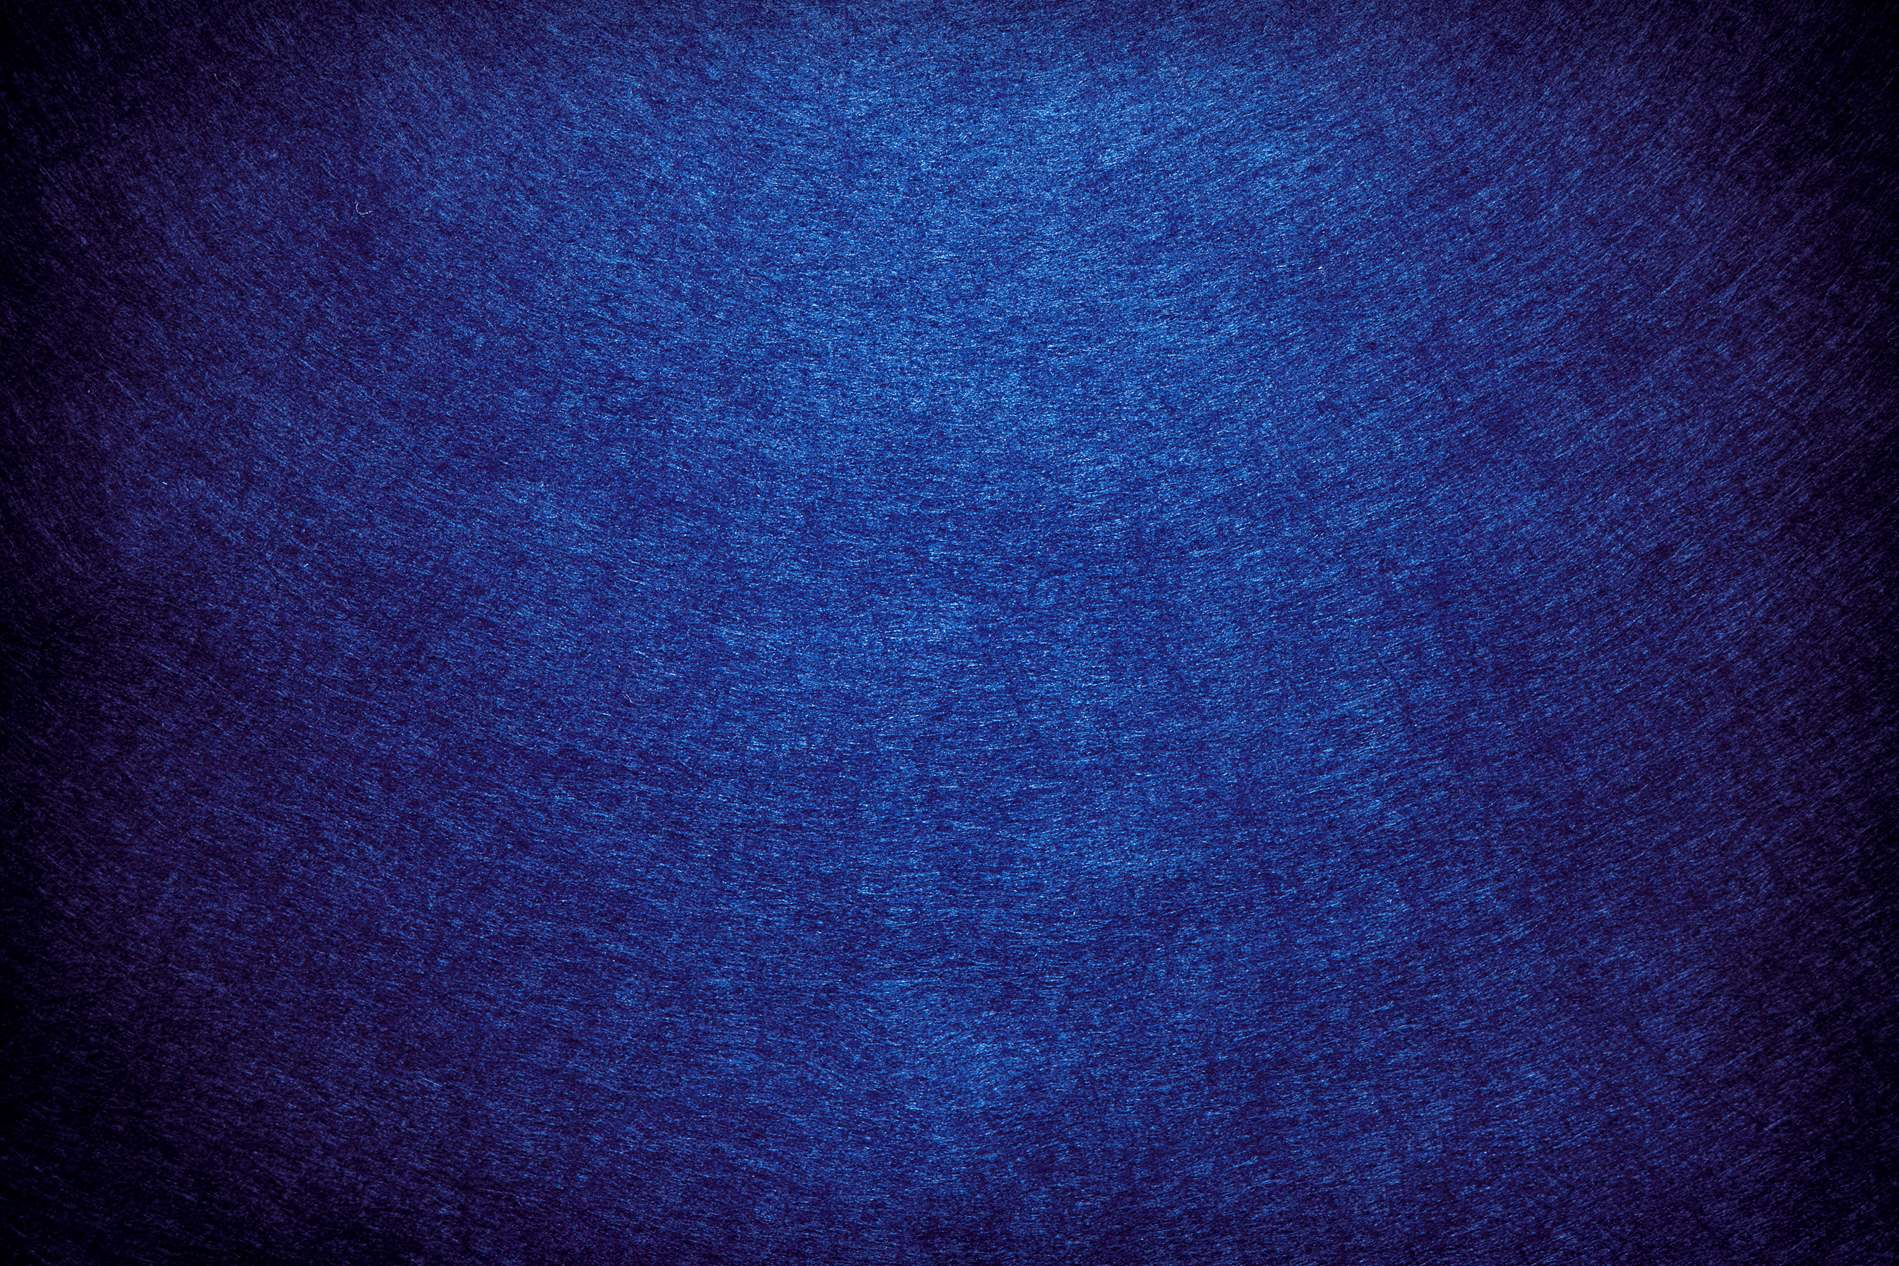 dark blue fabric background texture photohdx